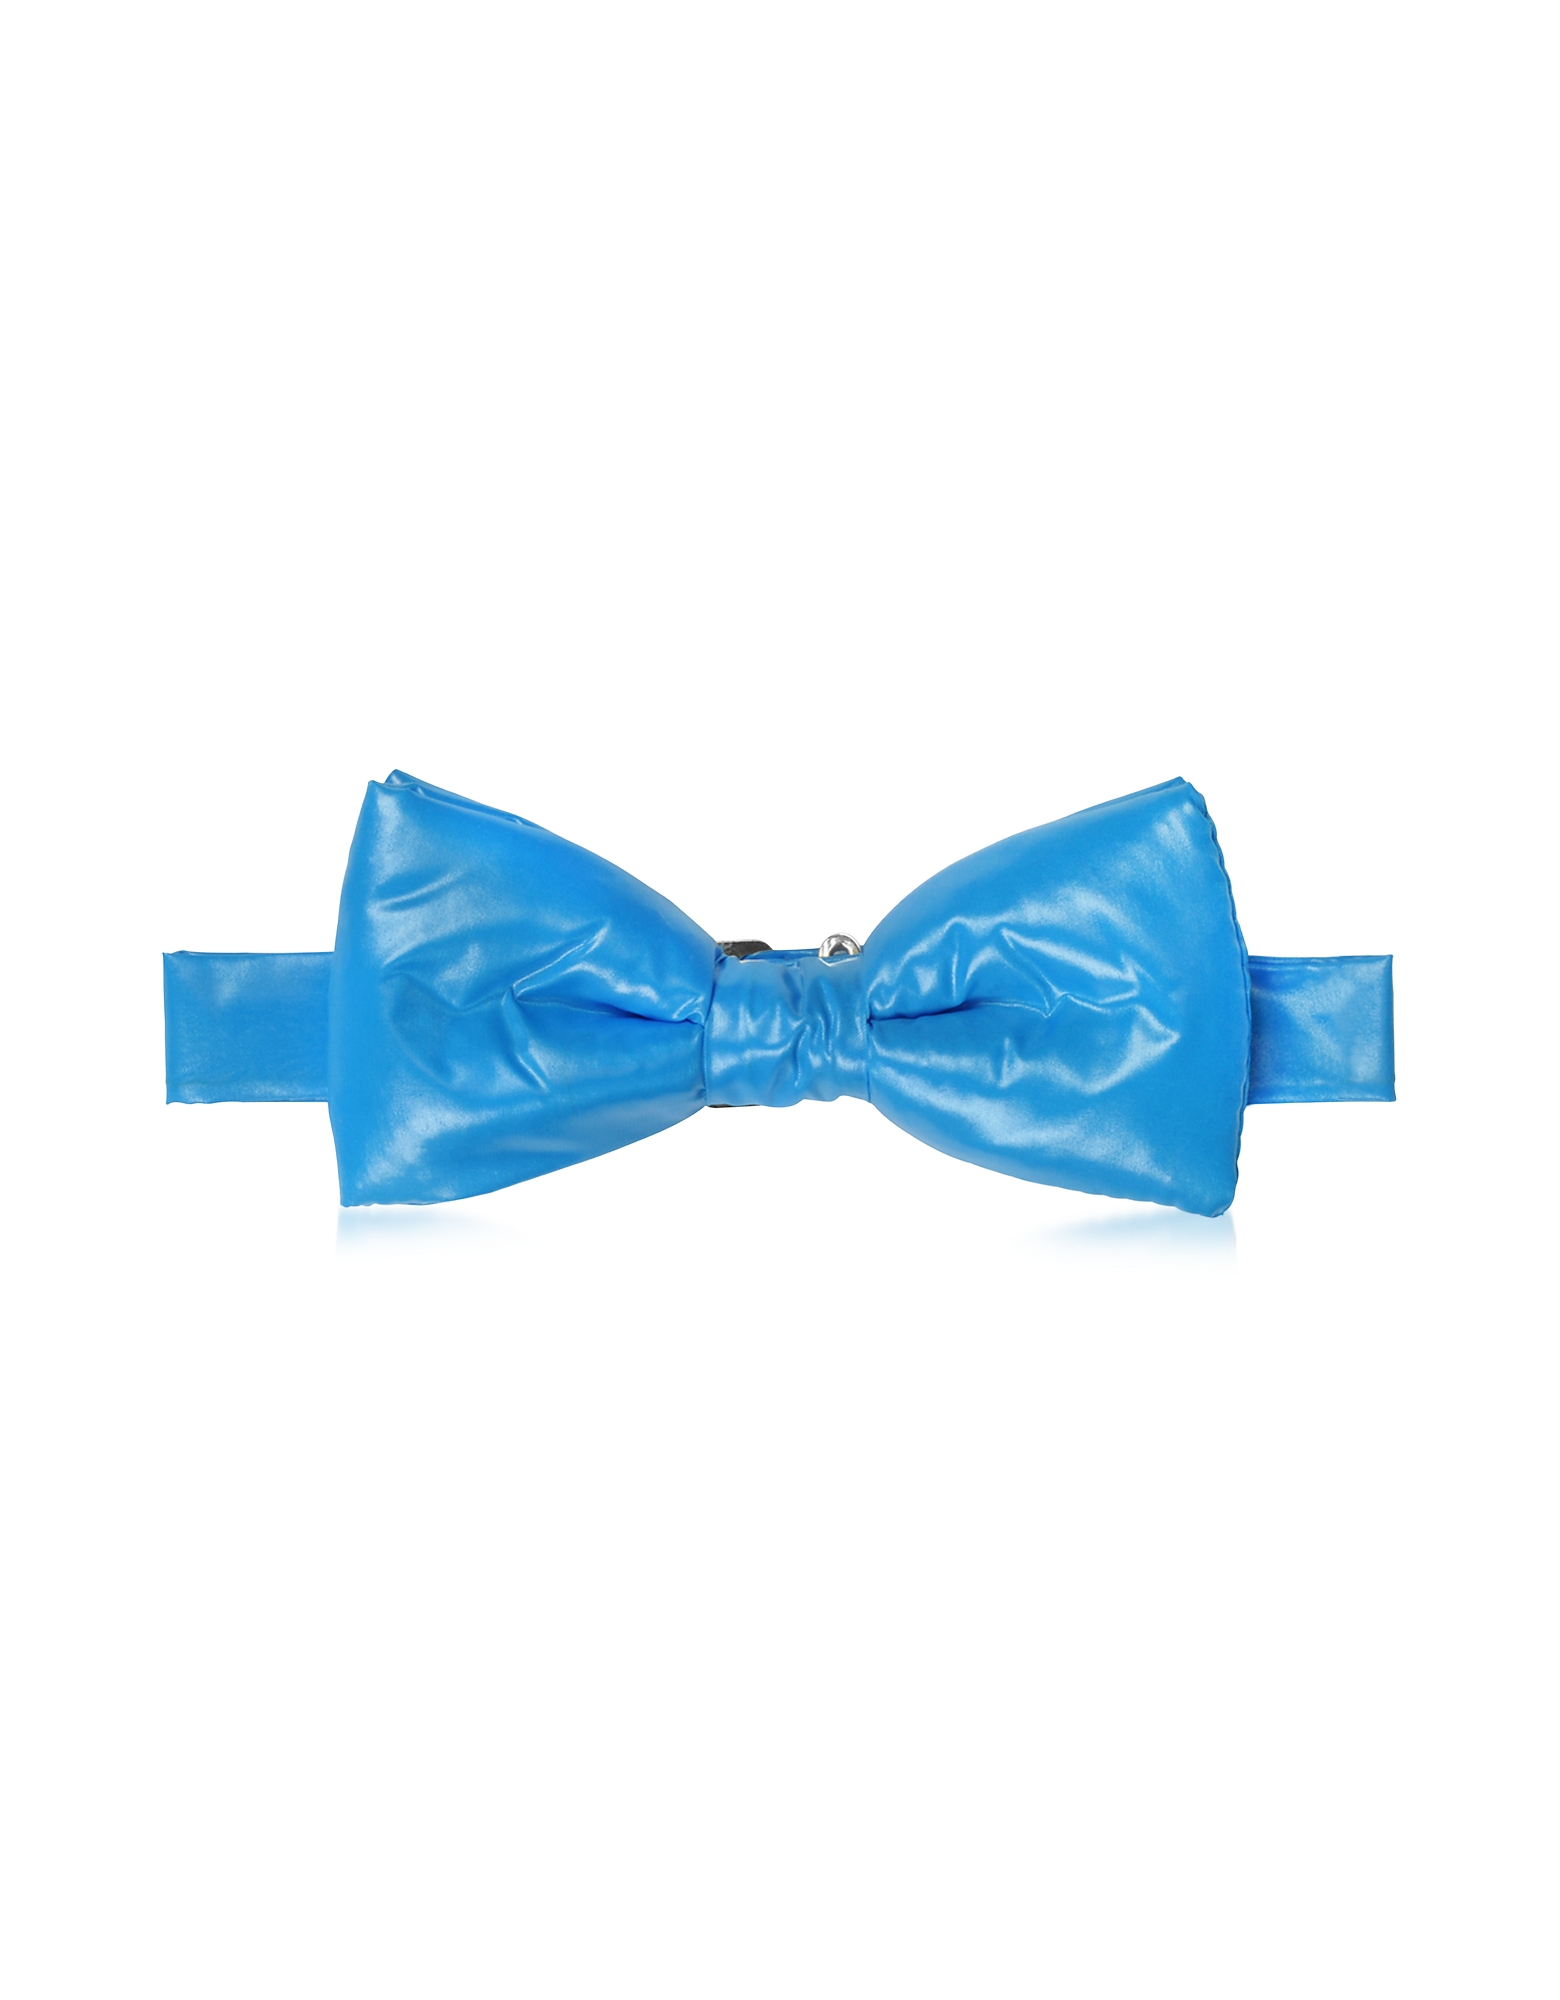 Forzieri Bowties and Cummerbunds, Sky Blue Nylon Puffer Bow Tie